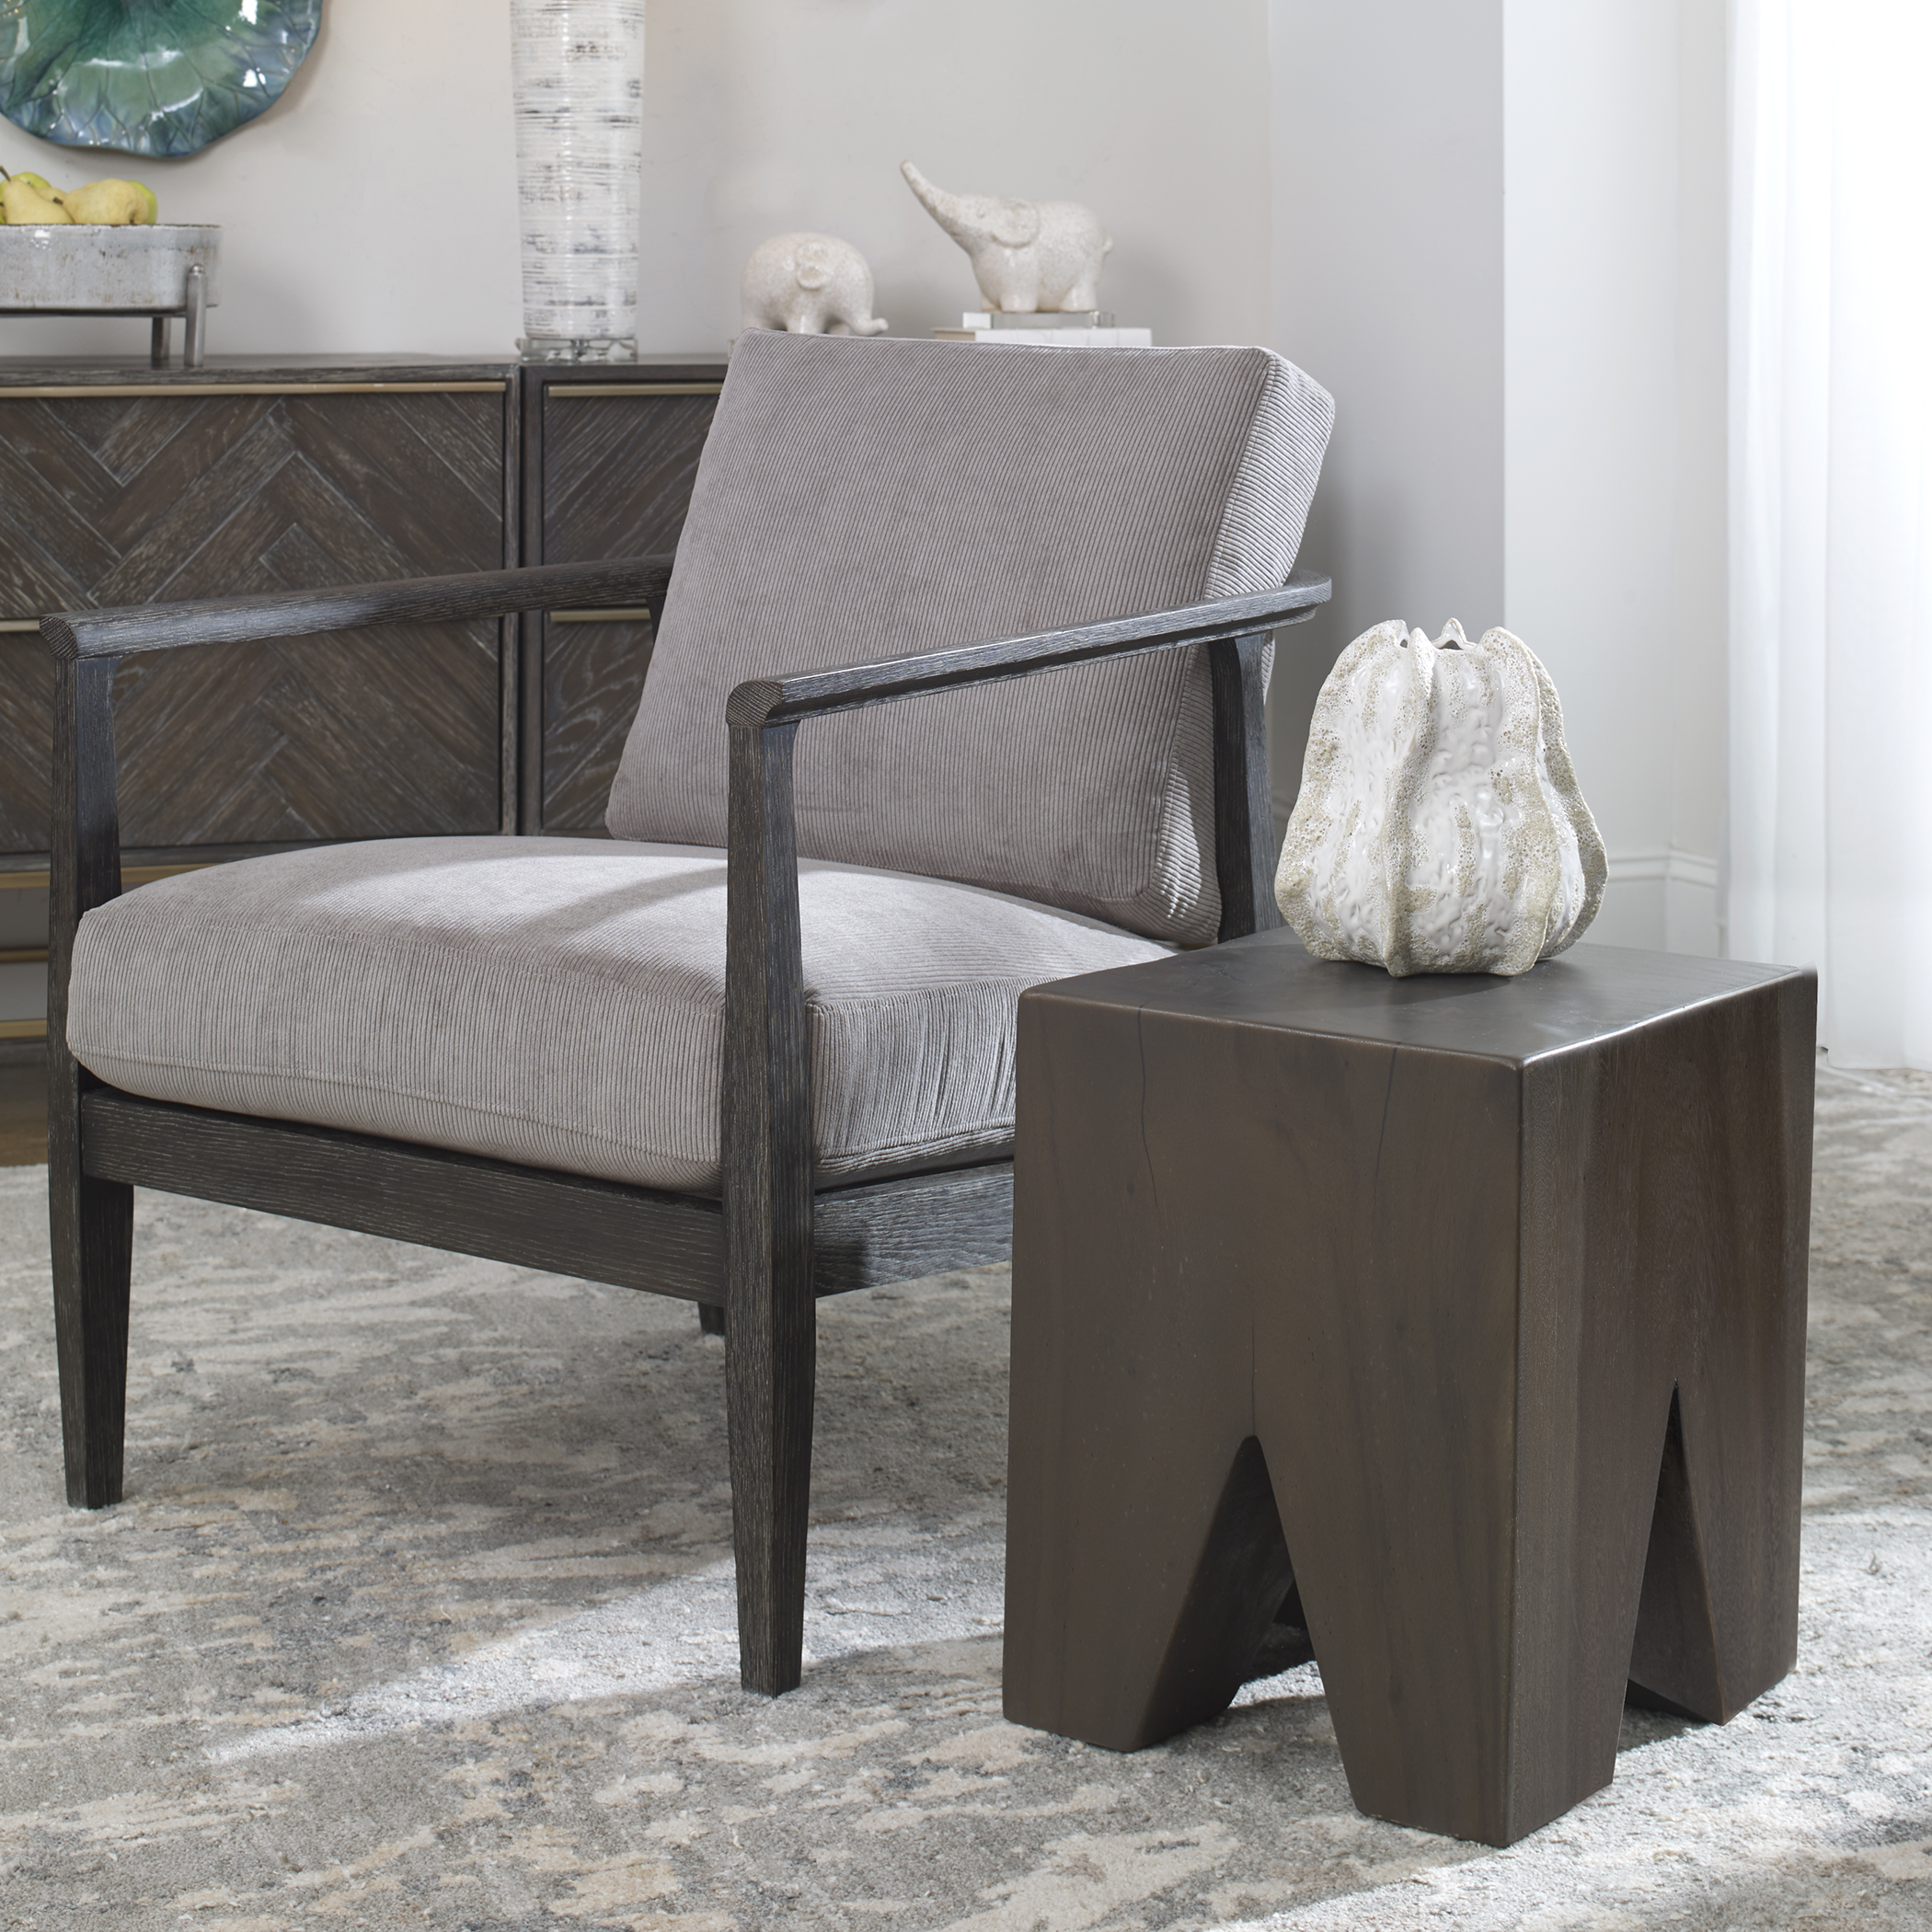 Uttermost Armin Solid Wood Accent Stool